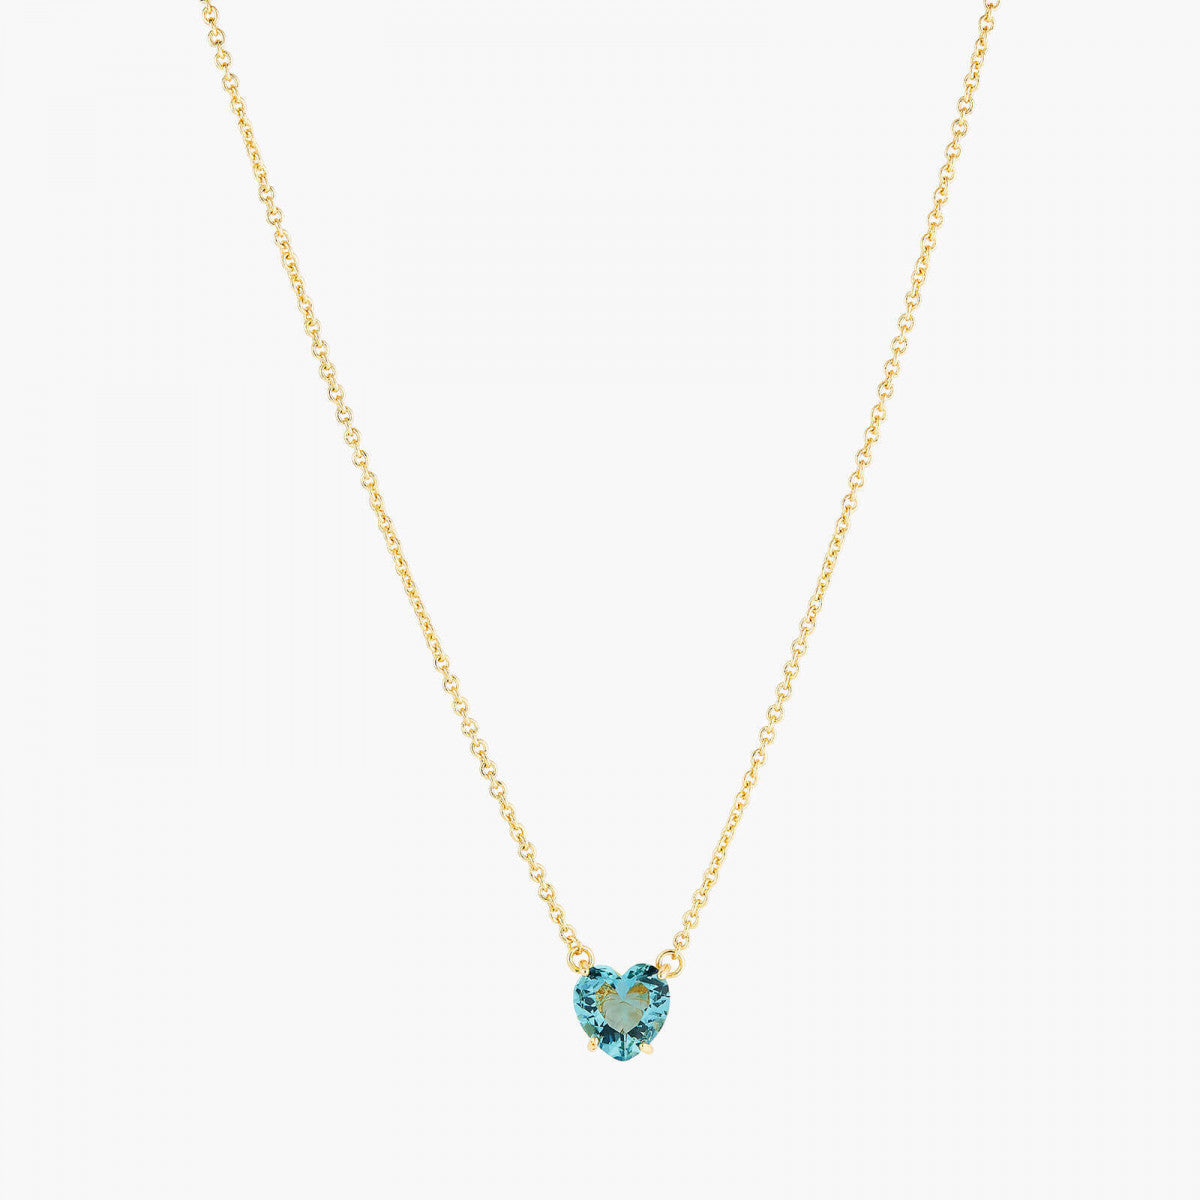 La Diamantine acqua azzura heart necklace pendant necklace